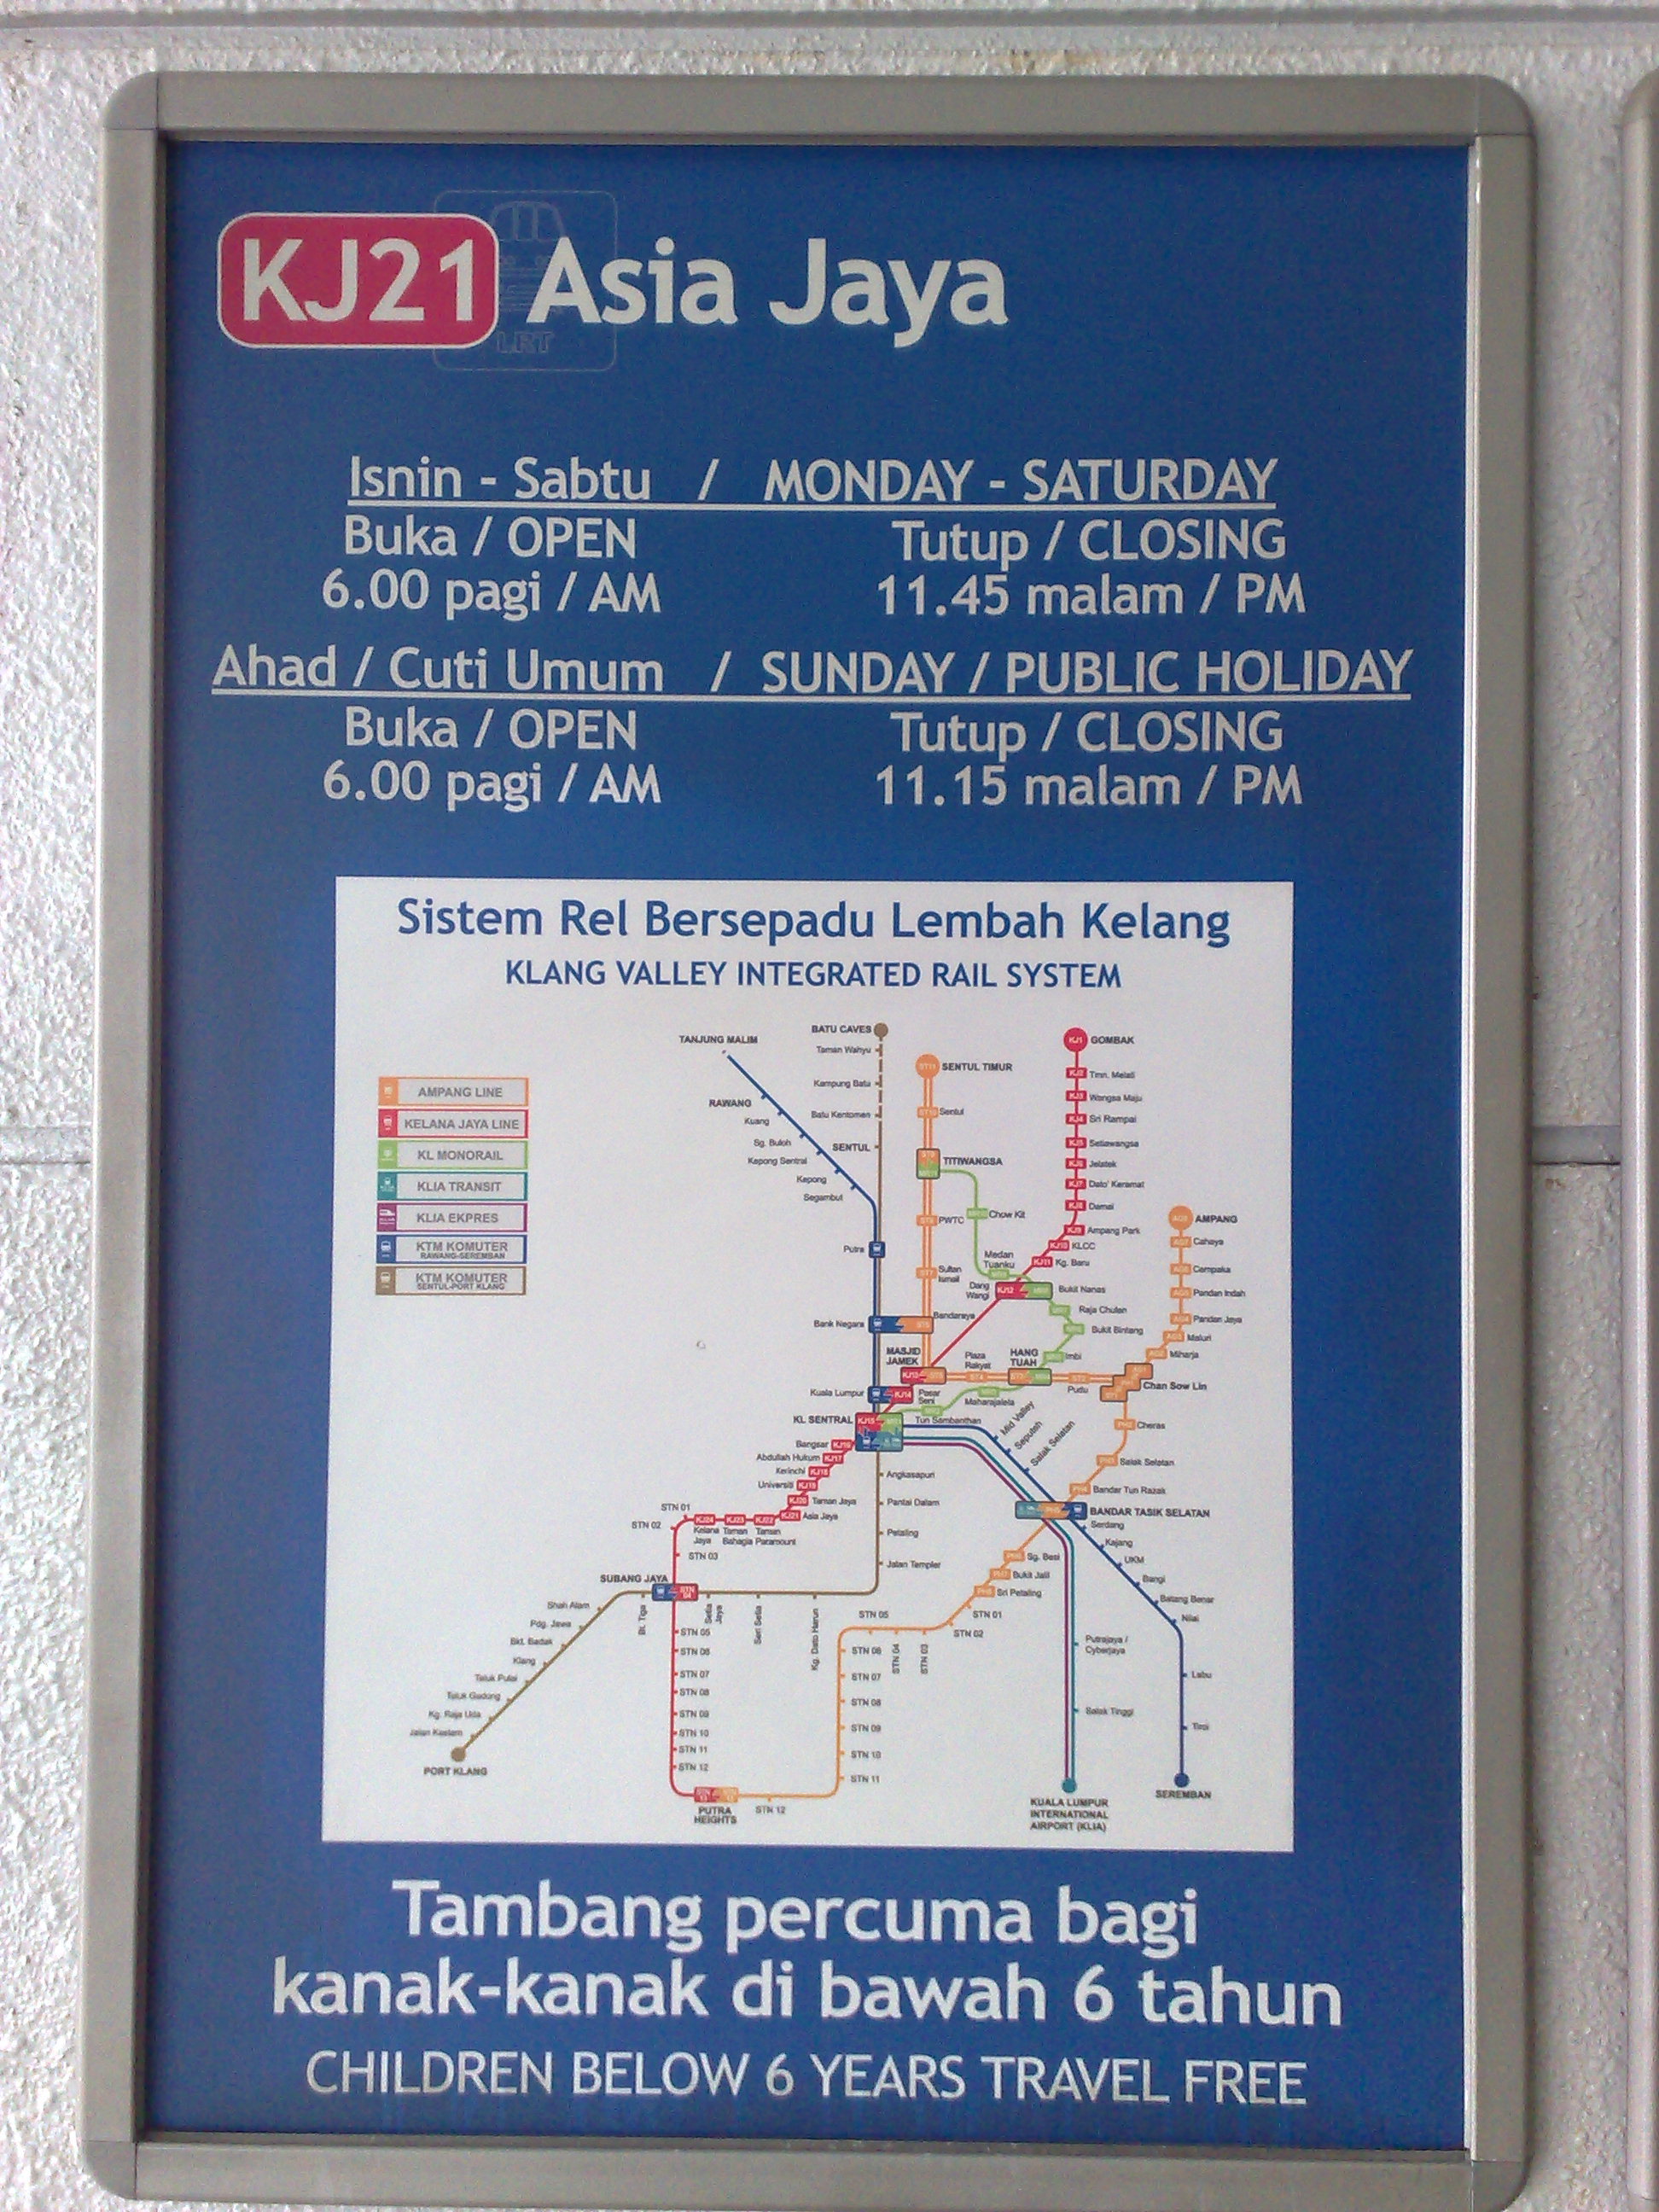 Map Of Asia Jaya Lrt Station.File Asia Jaya Lrt Notice 1 Jpg Wikimedia Commons